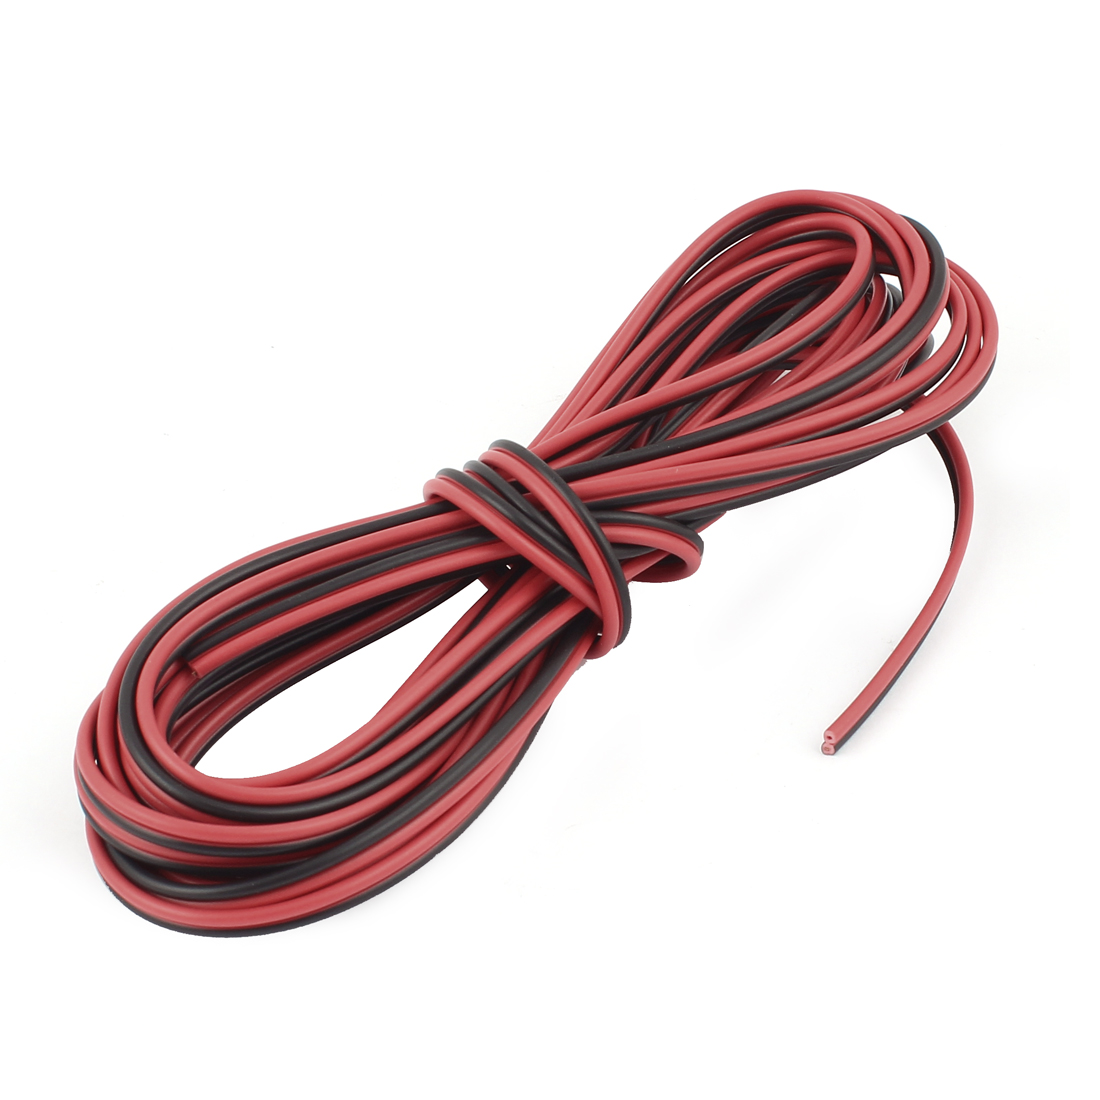 20AWG Indoor Outdoor PVC Insulated Electrical Wire Cable Black Red 6 Meters